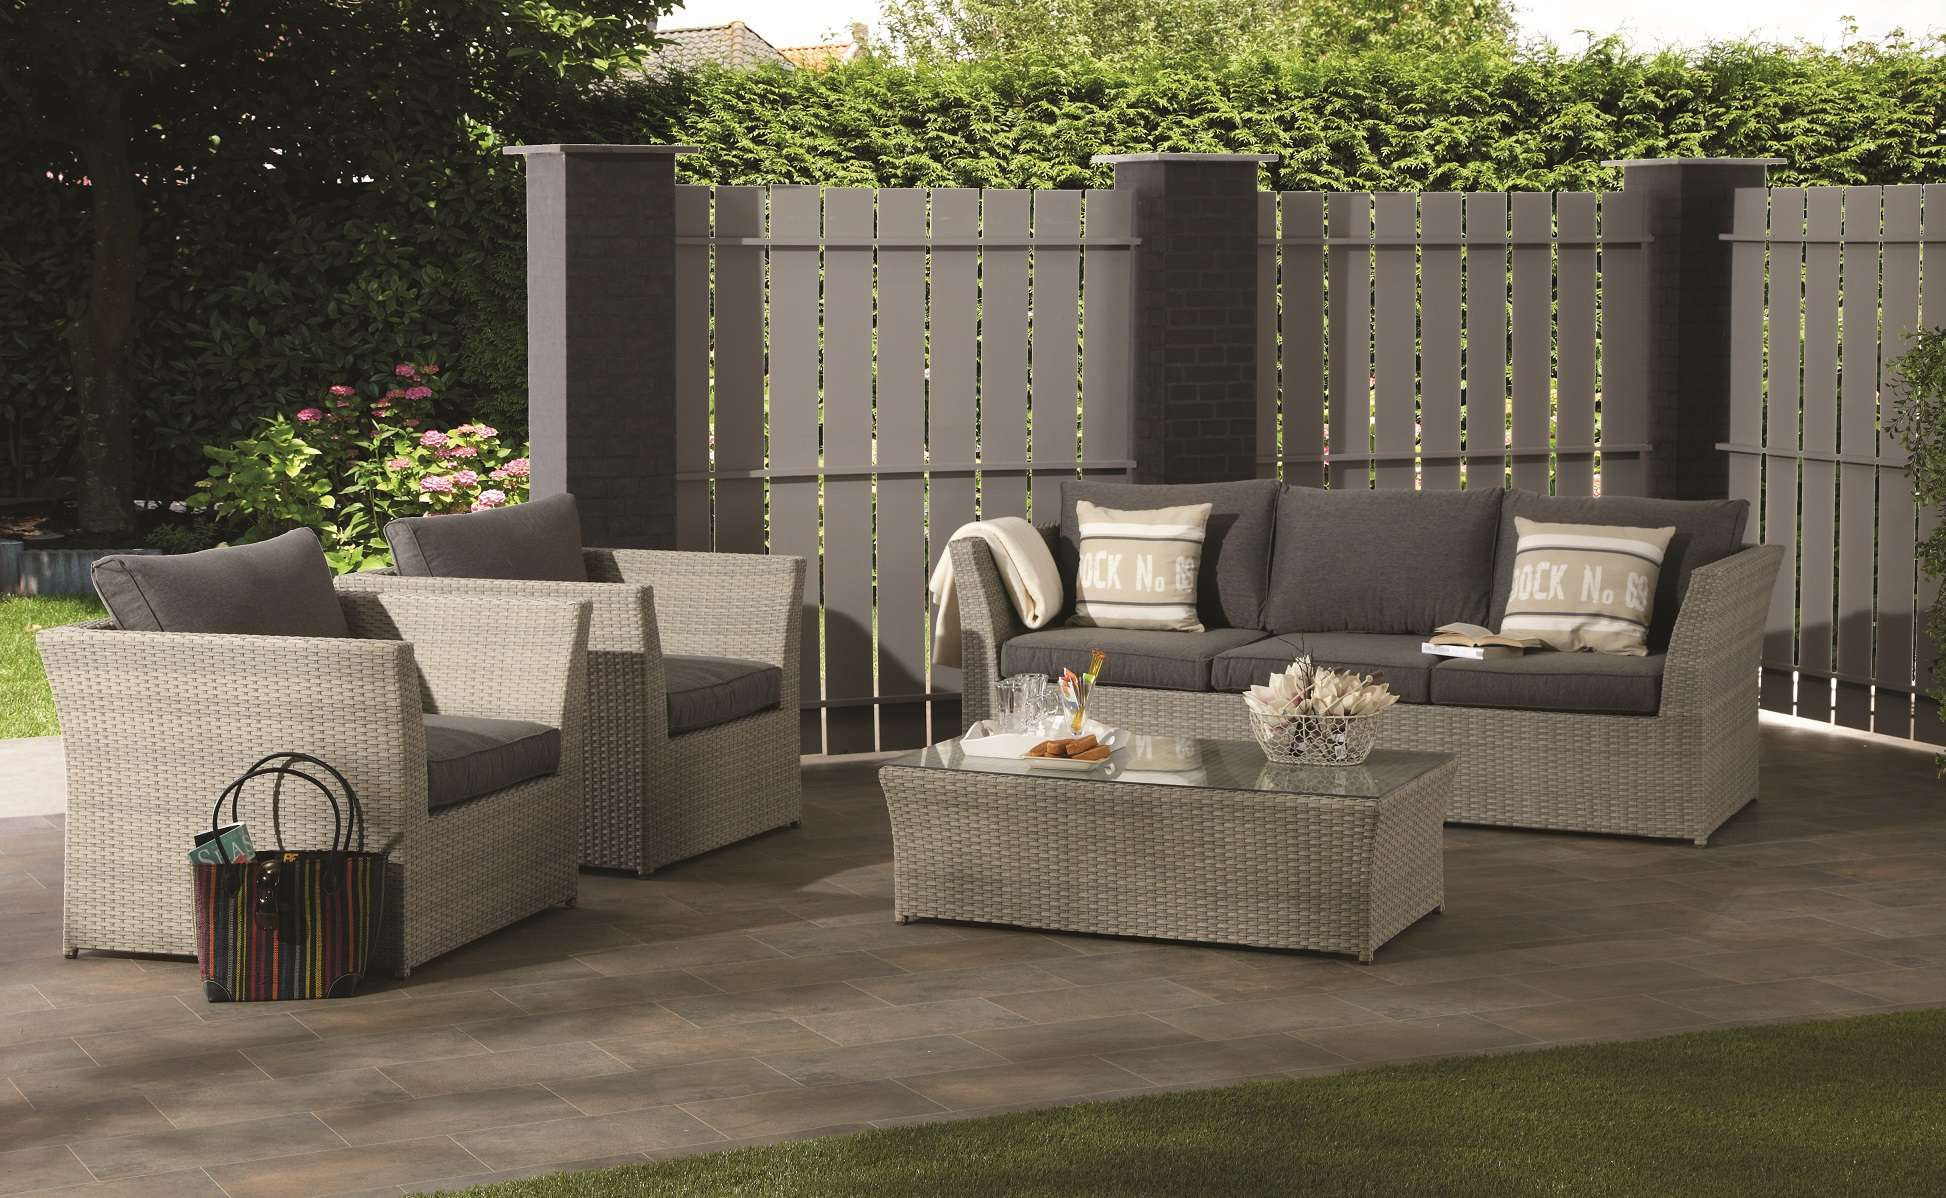 gartenlounge rattan braun. Black Bedroom Furniture Sets. Home Design Ideas